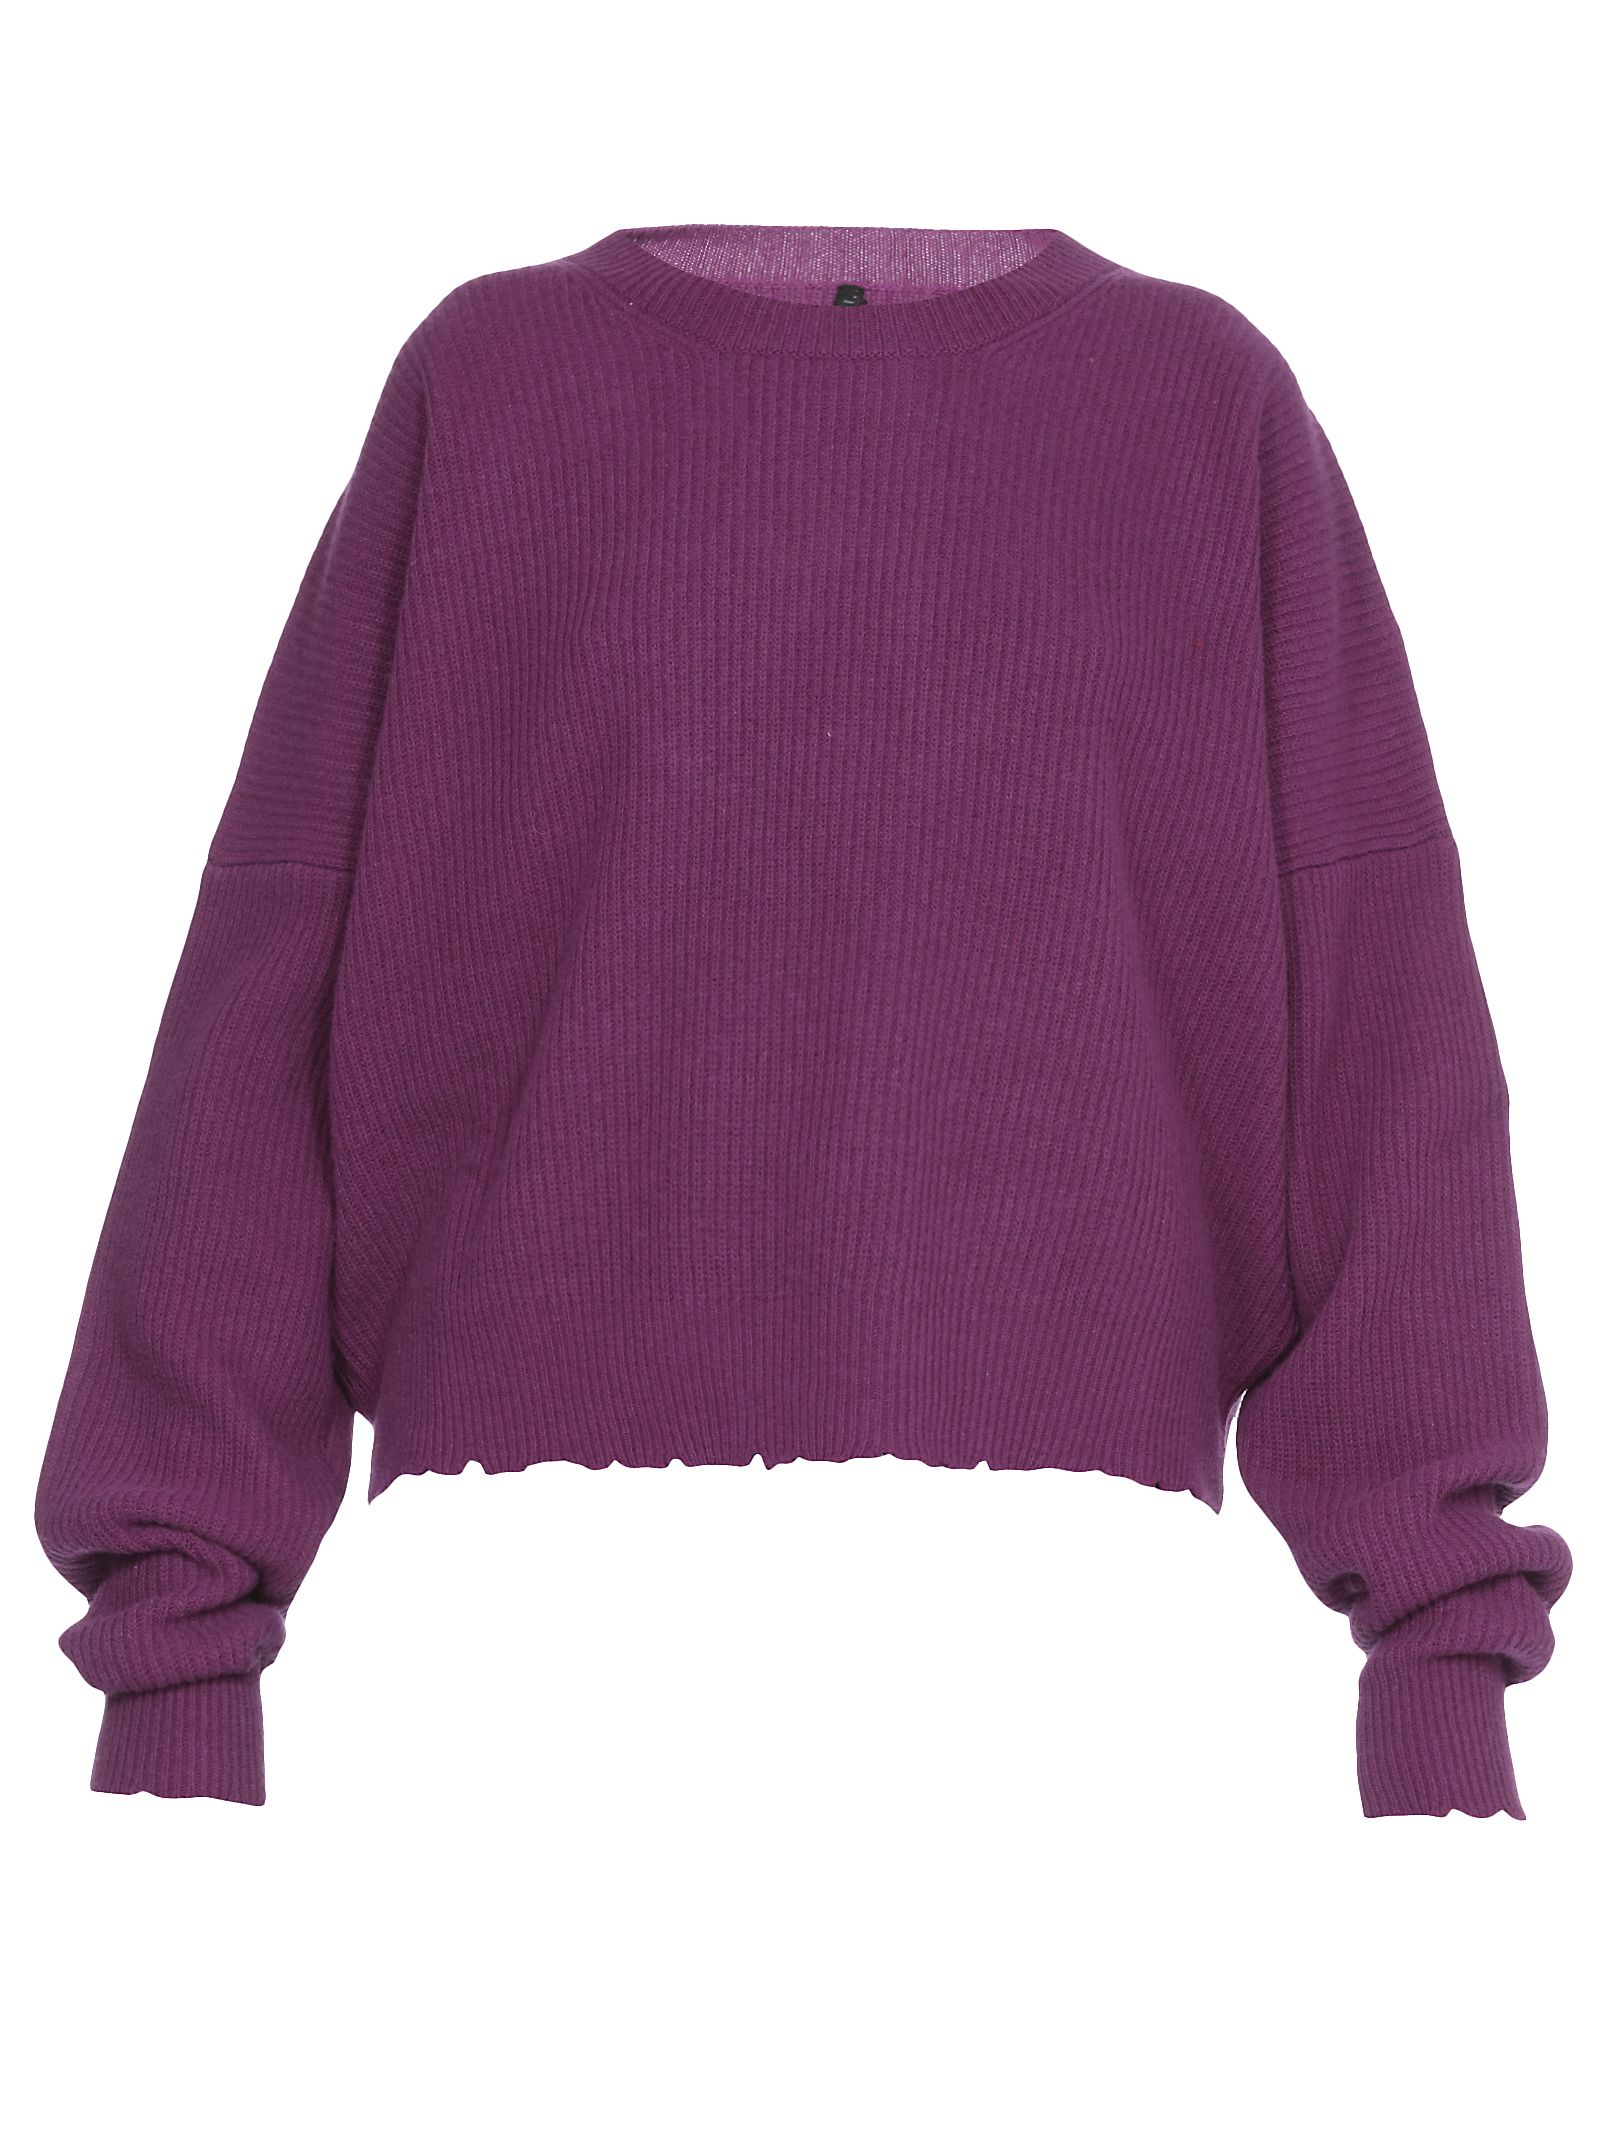 Ben Taverniti Unravel Project OVERSIZE CHOPPED SWEATER